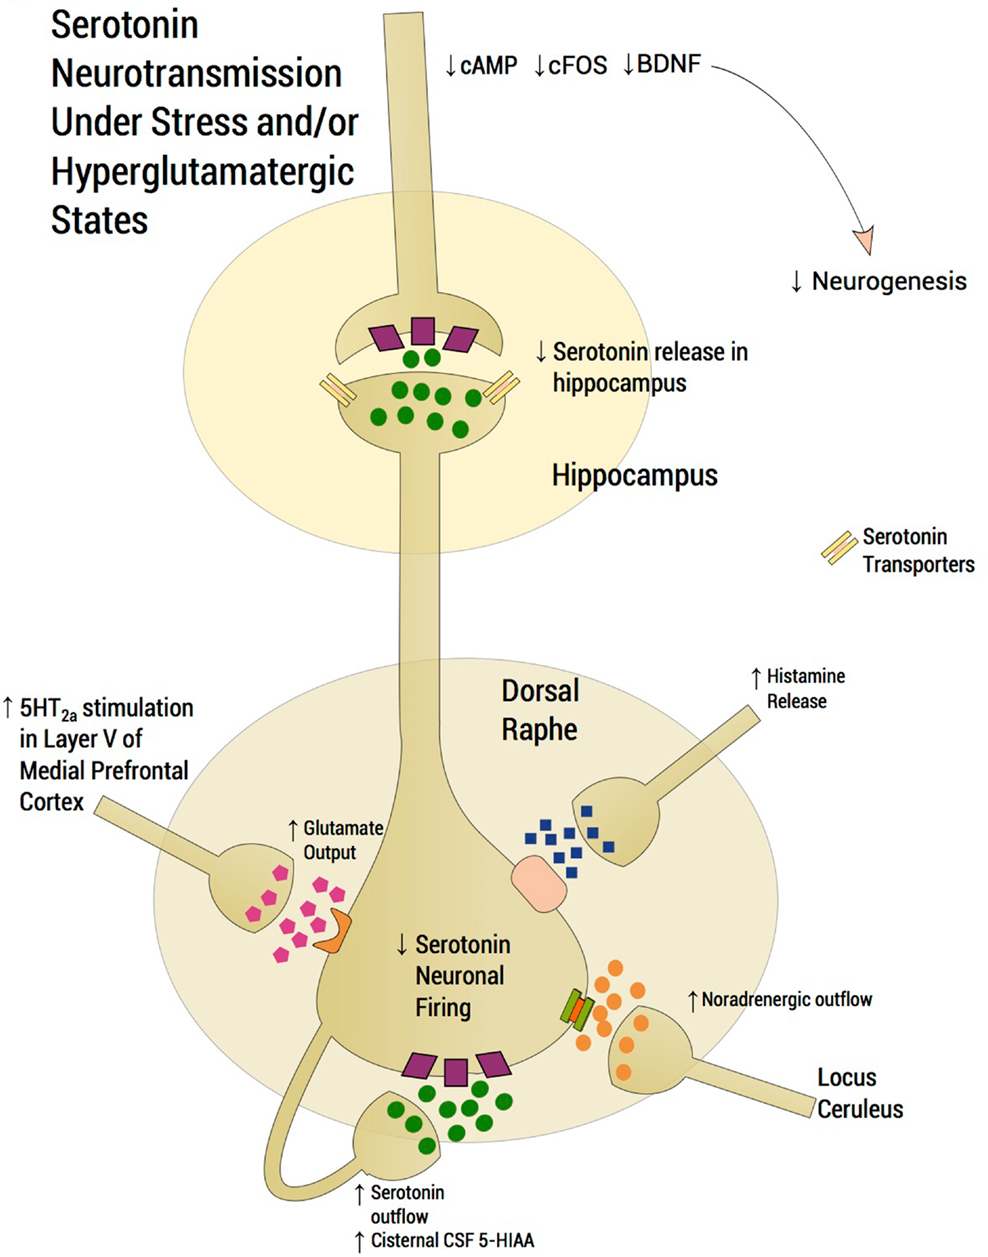 Frontiers | A Neurobiological Hypothesis of Treatment-Resistant